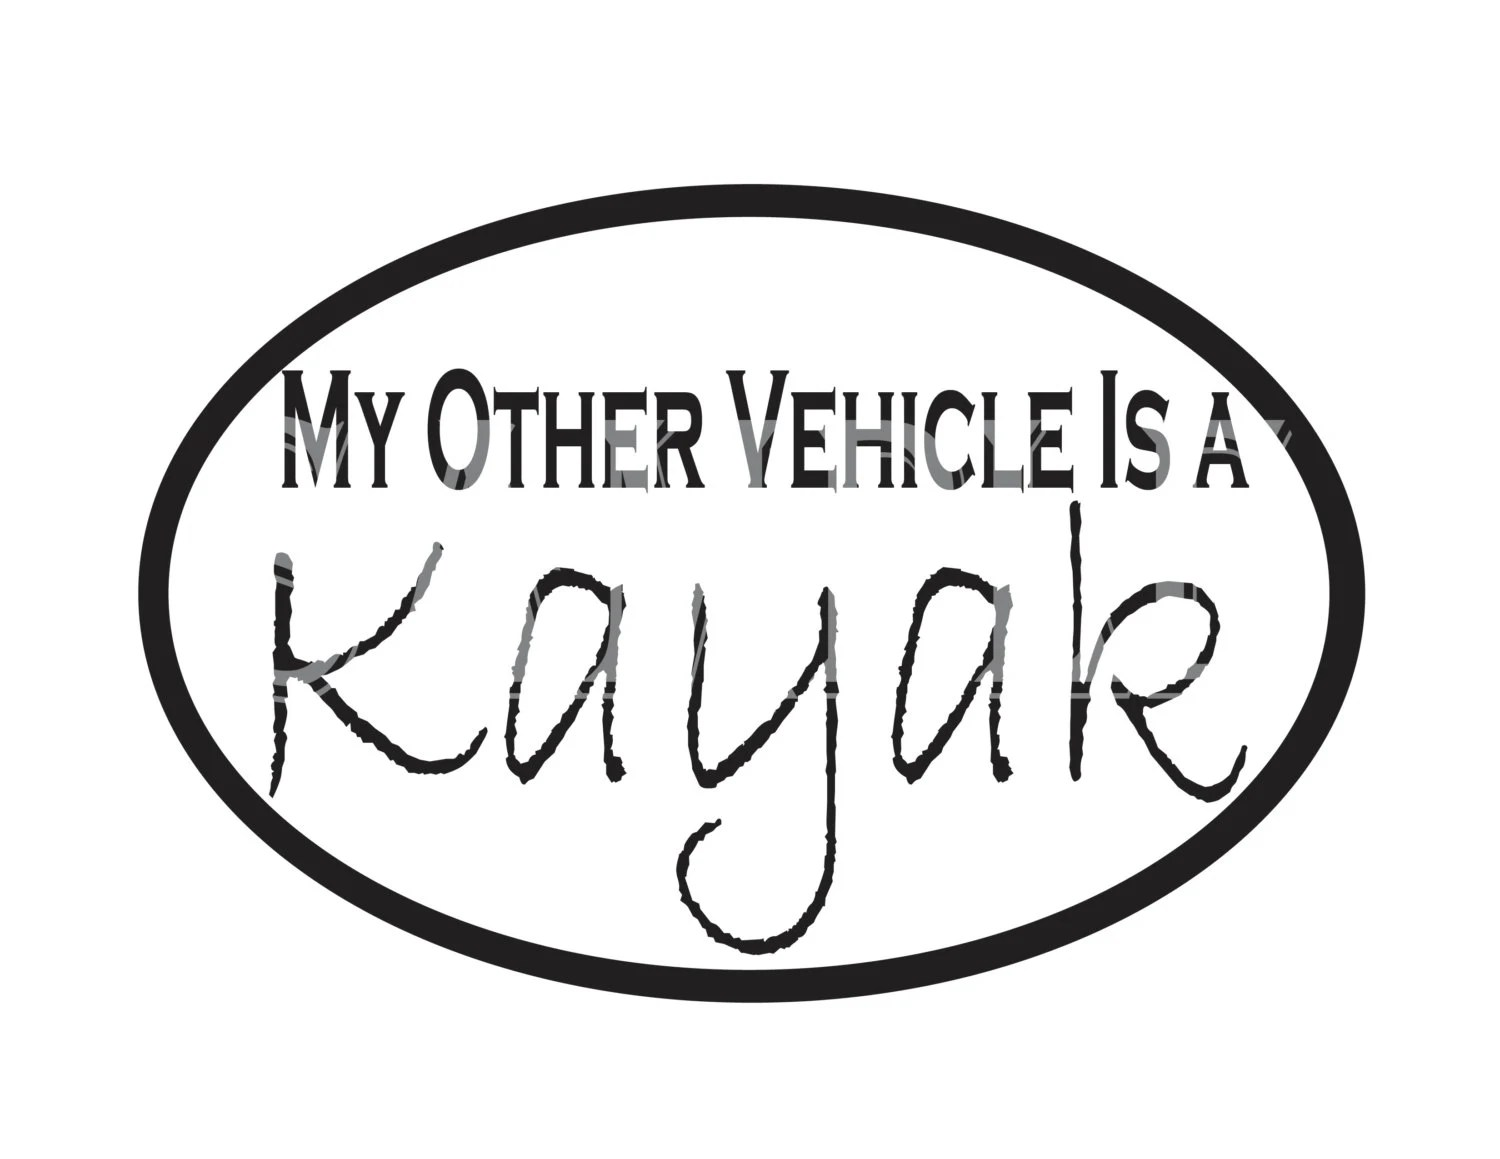 Kayak SVG Image File for Vinyl Cut Out Die Cutter~ My